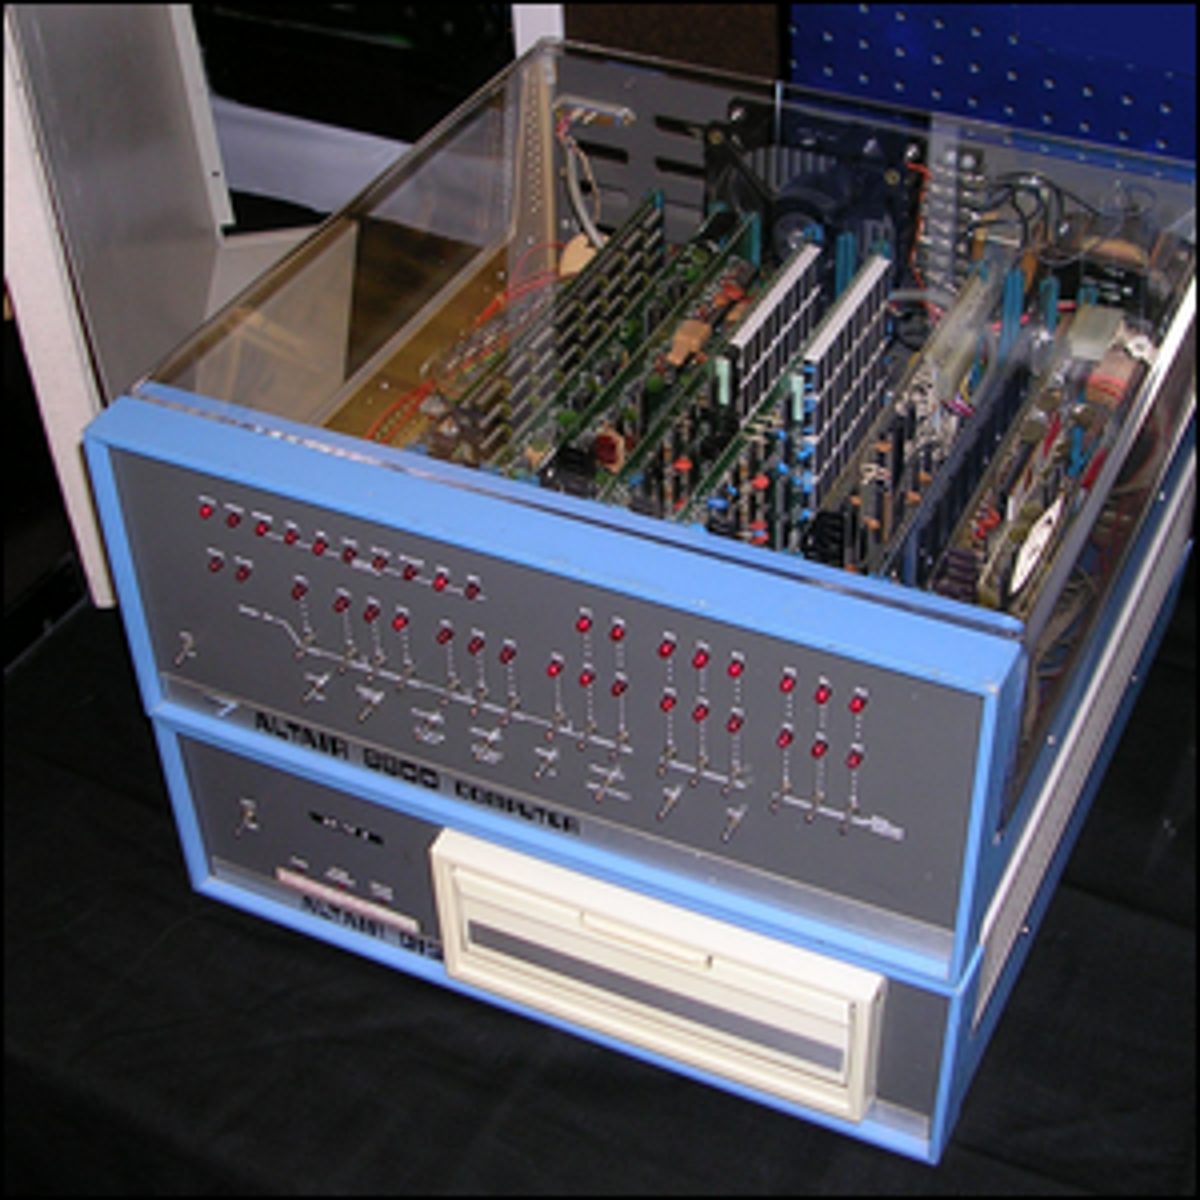 An Altair 8800 computer with an 8 inch floppy disk system.